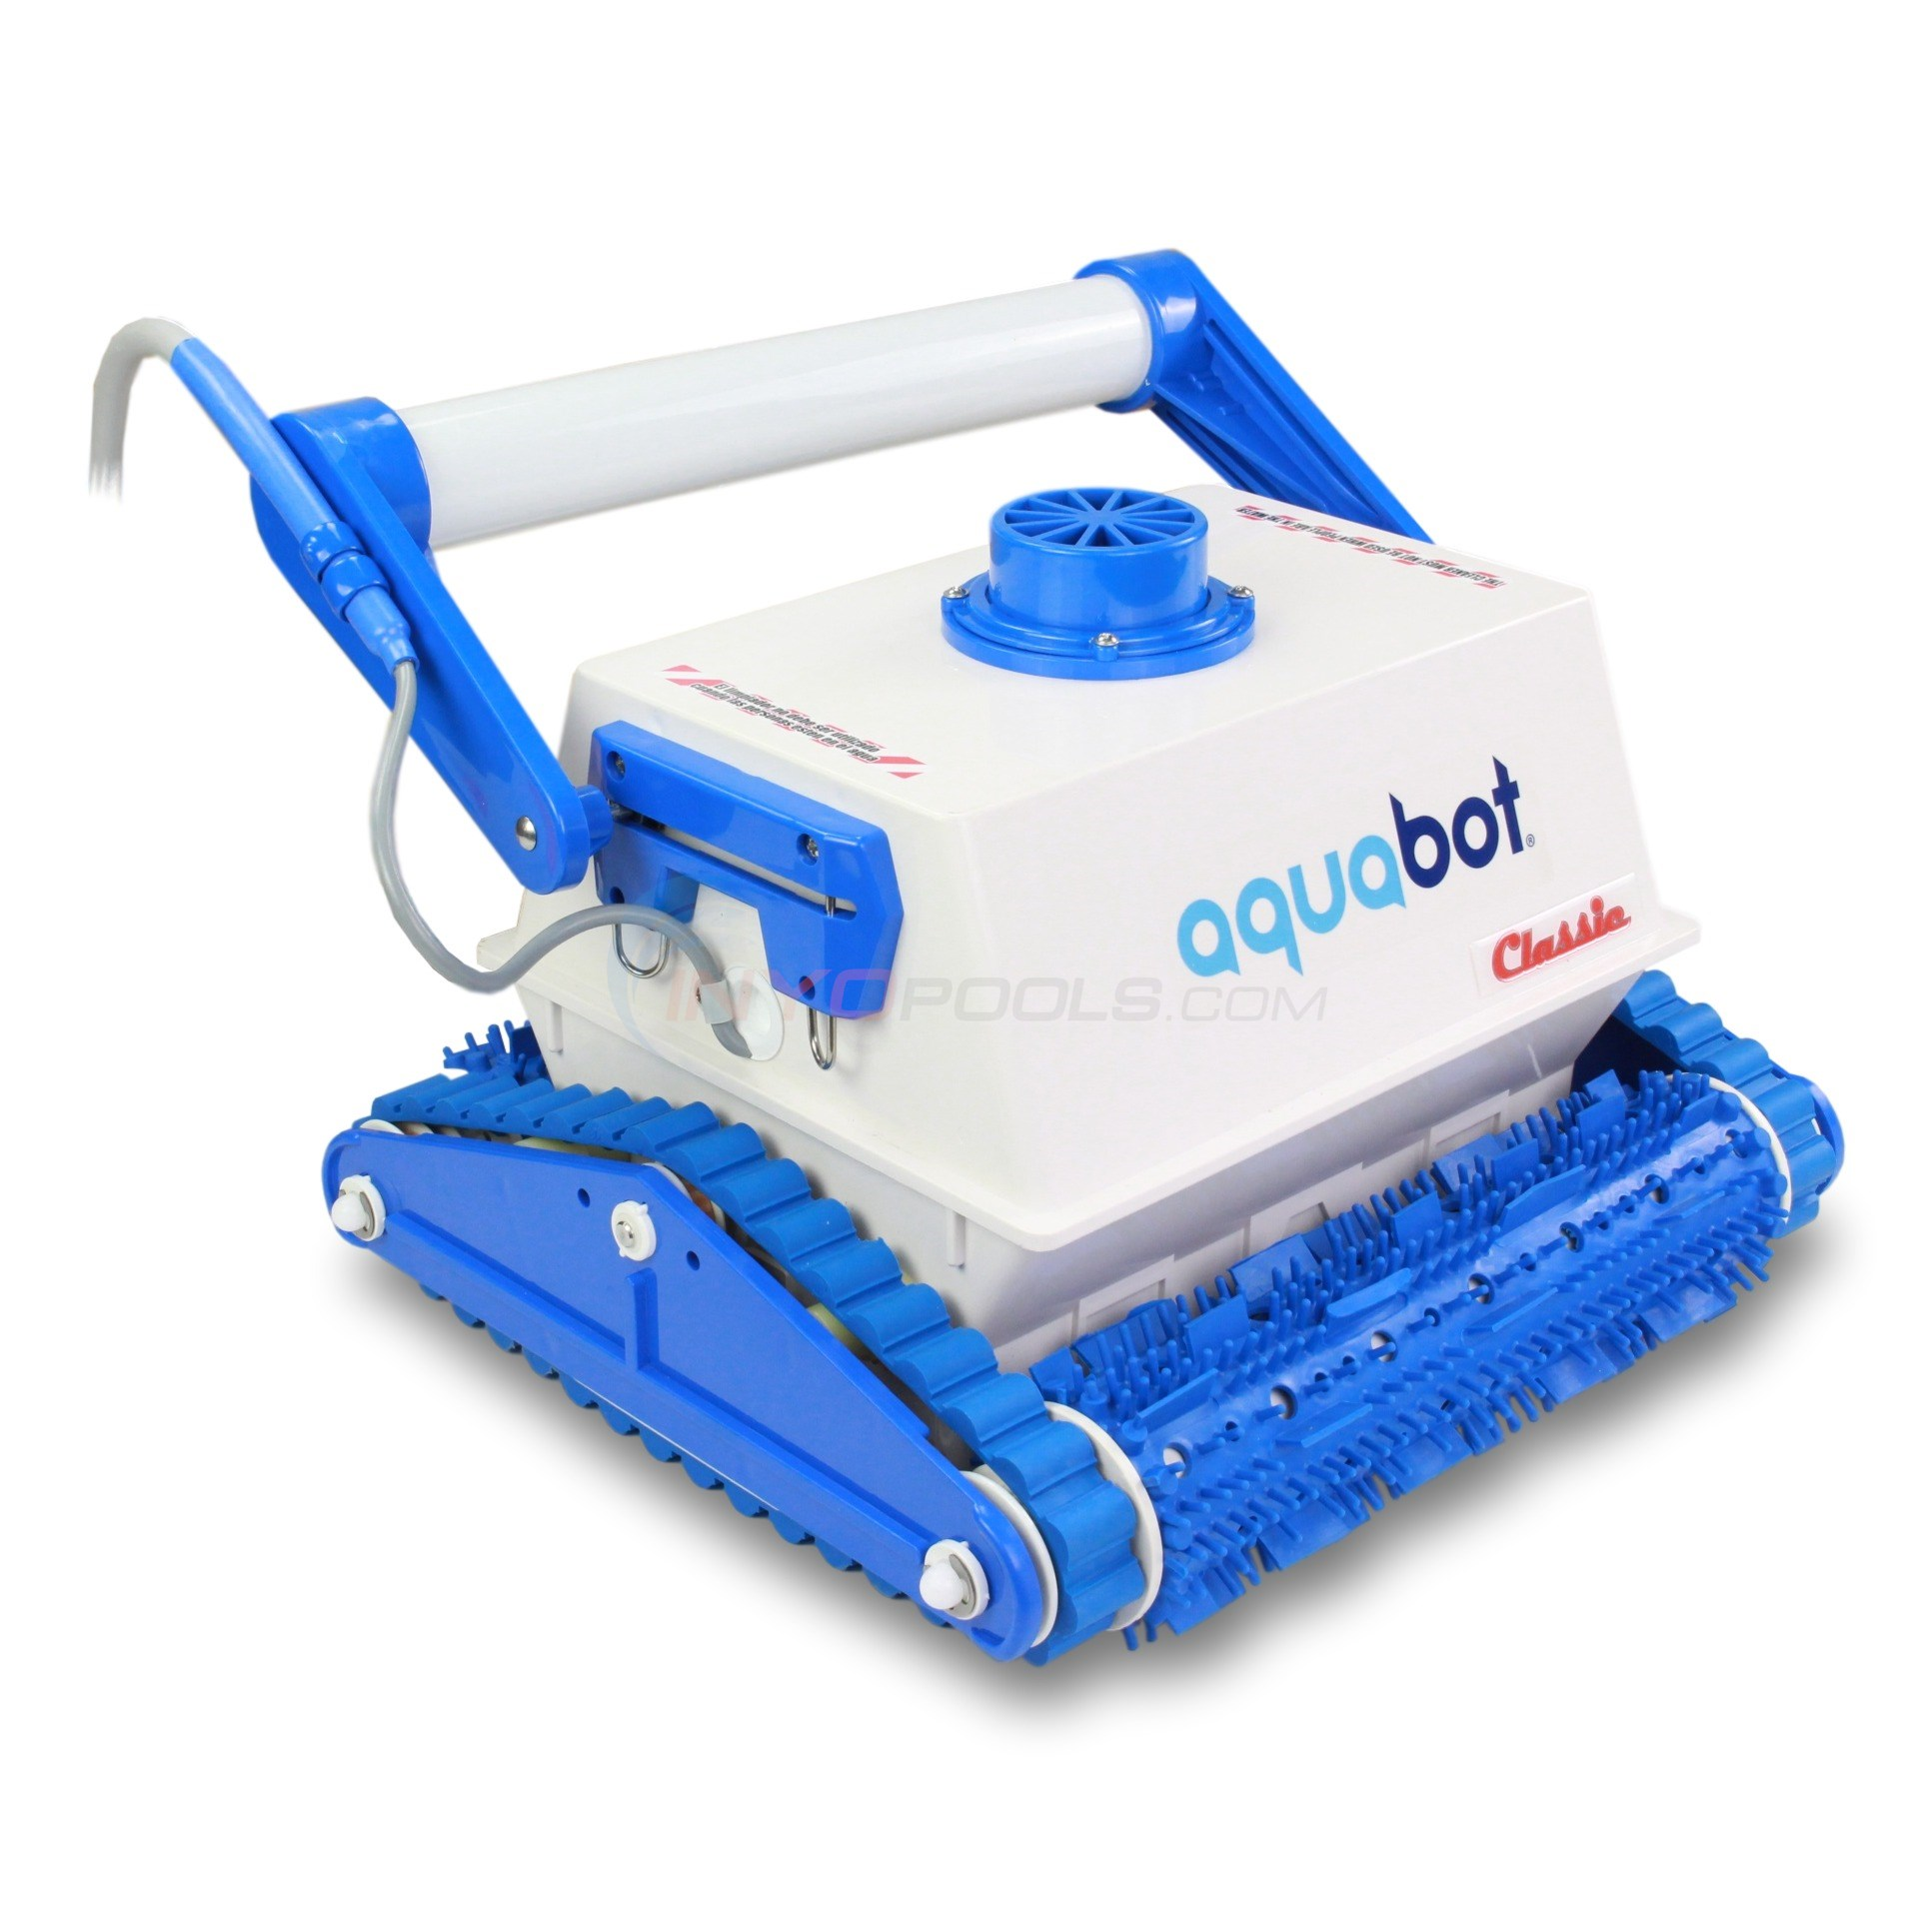 Aqua Products Aquabot Robotic Pool Cleaner - NE350